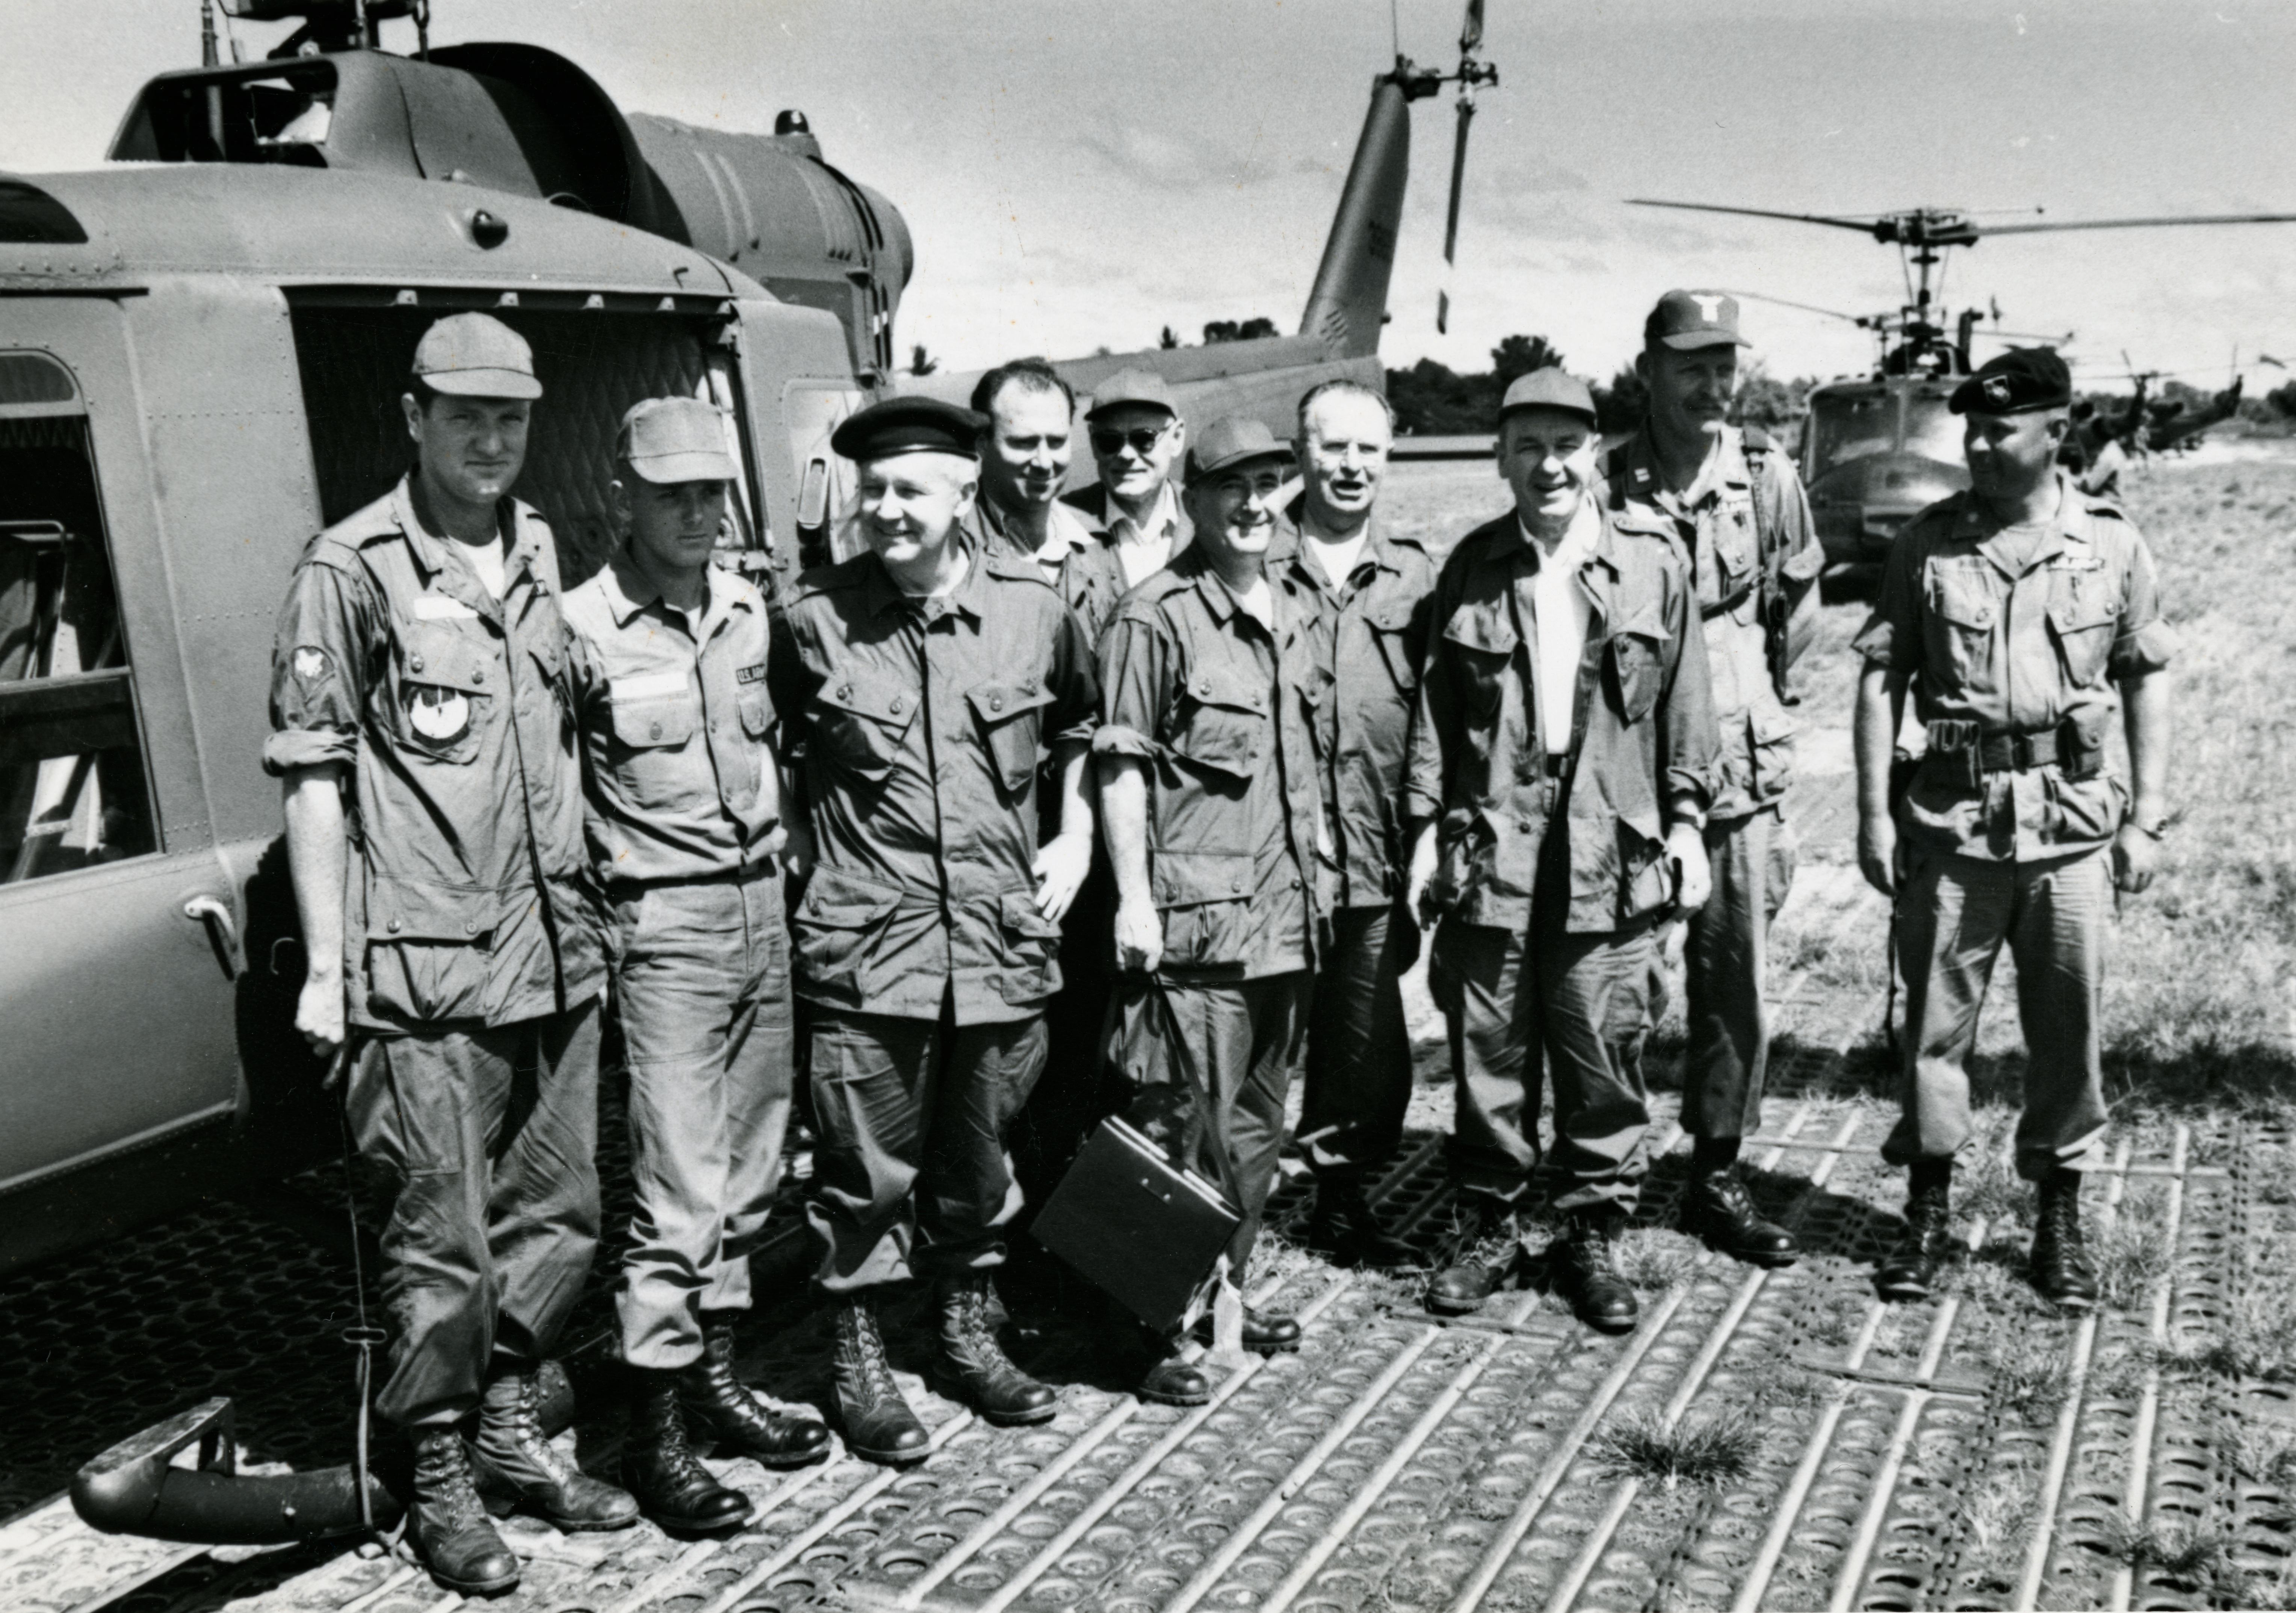 Congressman Arch Moore visited Vietnam several times during the war. He is pictured here with other members of the delegation in front of a helicopter in November 1965.